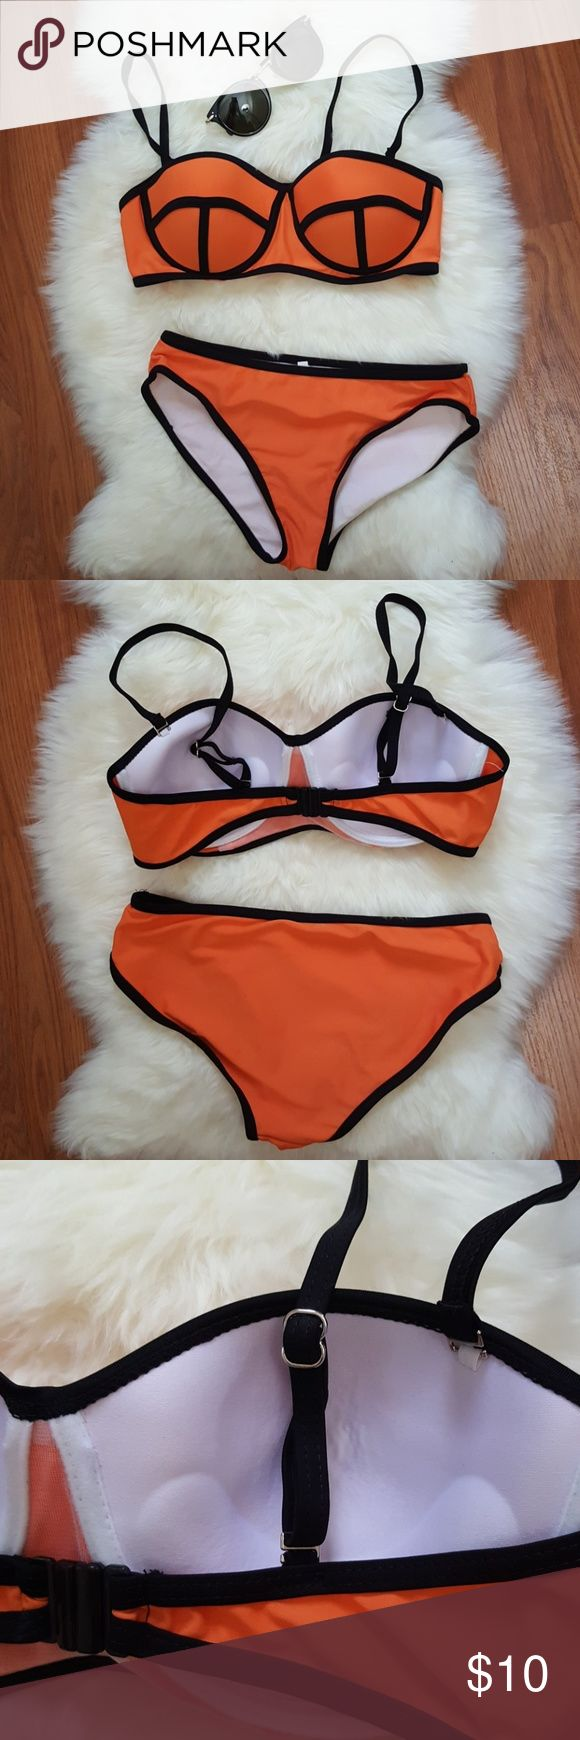 Orange Bikini Set Size: S Worn once, it was too small on me!  No rips/defects/pilling. In excellent condition besides some unknown highlighter marks in the bottom interior.   *this is not a Triangl bikini! Brand unknown. *selling as a set :) listing is only for the bikini. Swim Bikinis